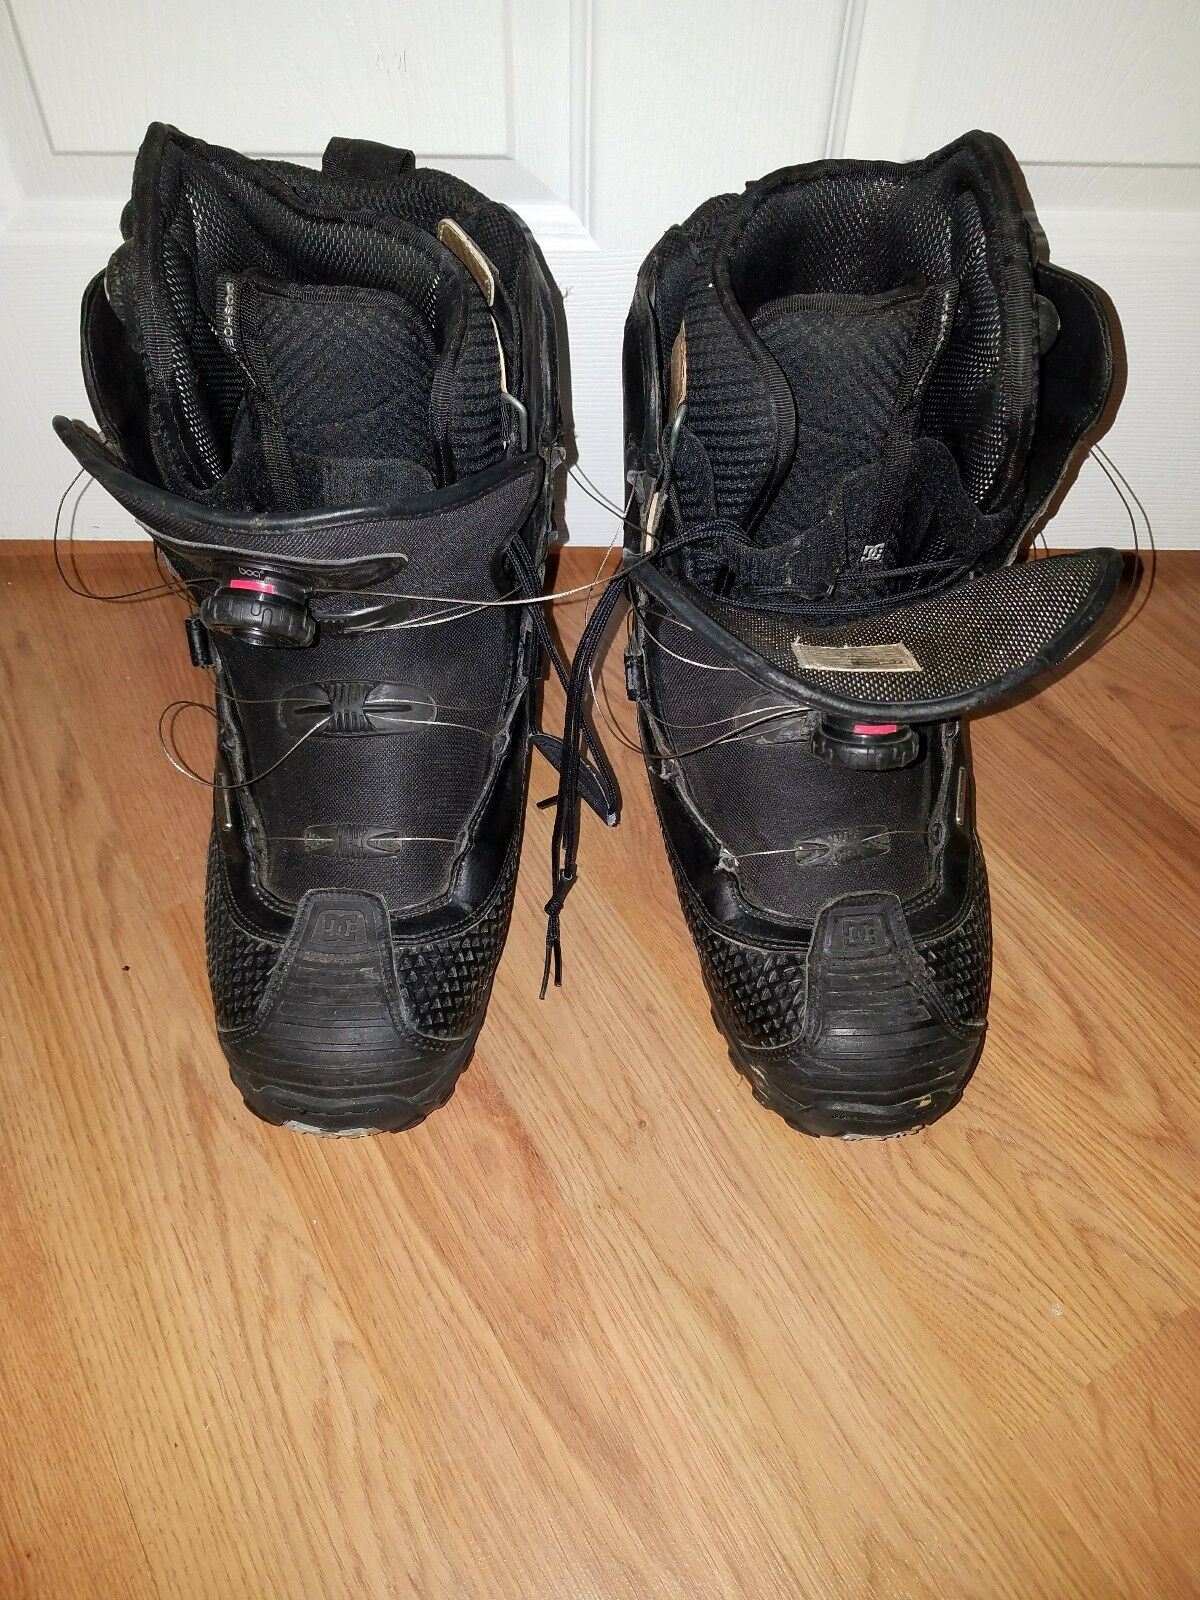 Dc snow boots Size 13